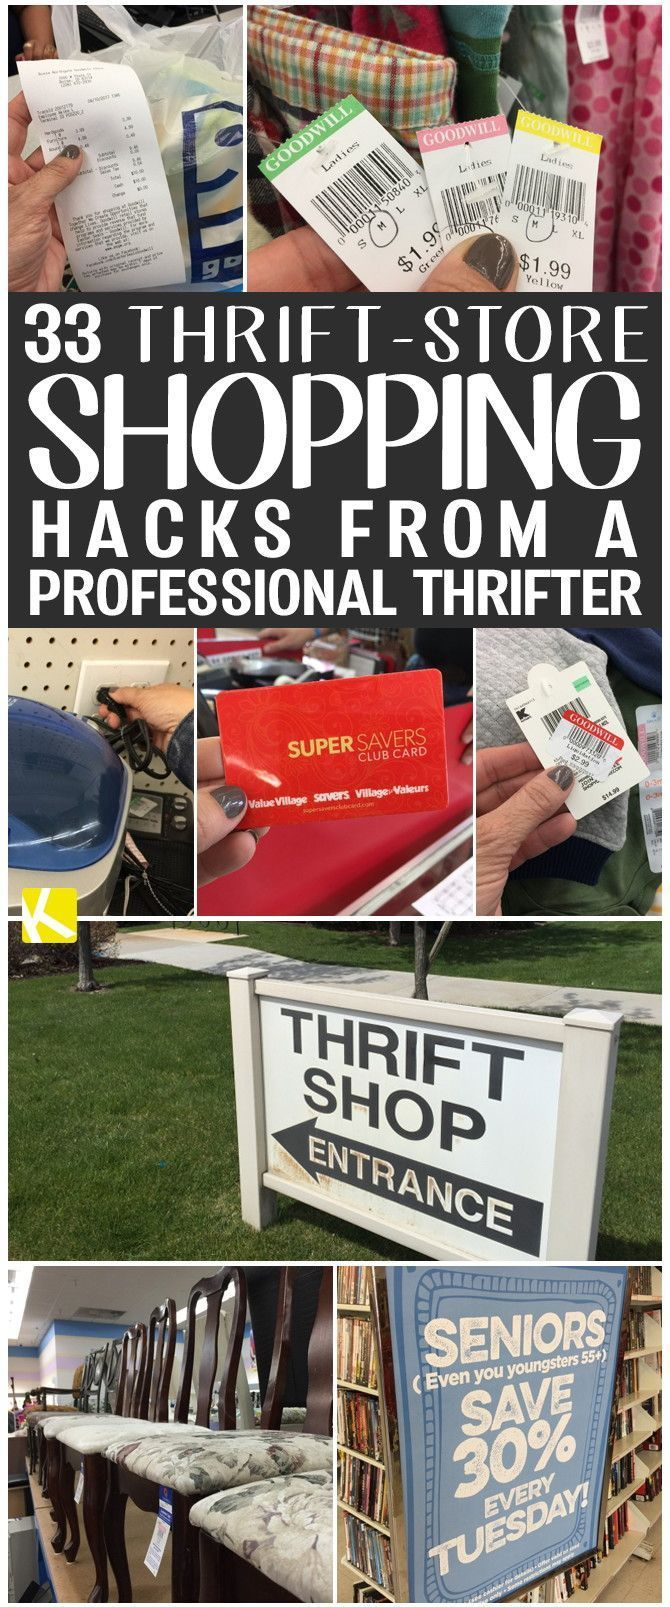 33 Thrift Store Shopping Hacks From A Professional Thrifter